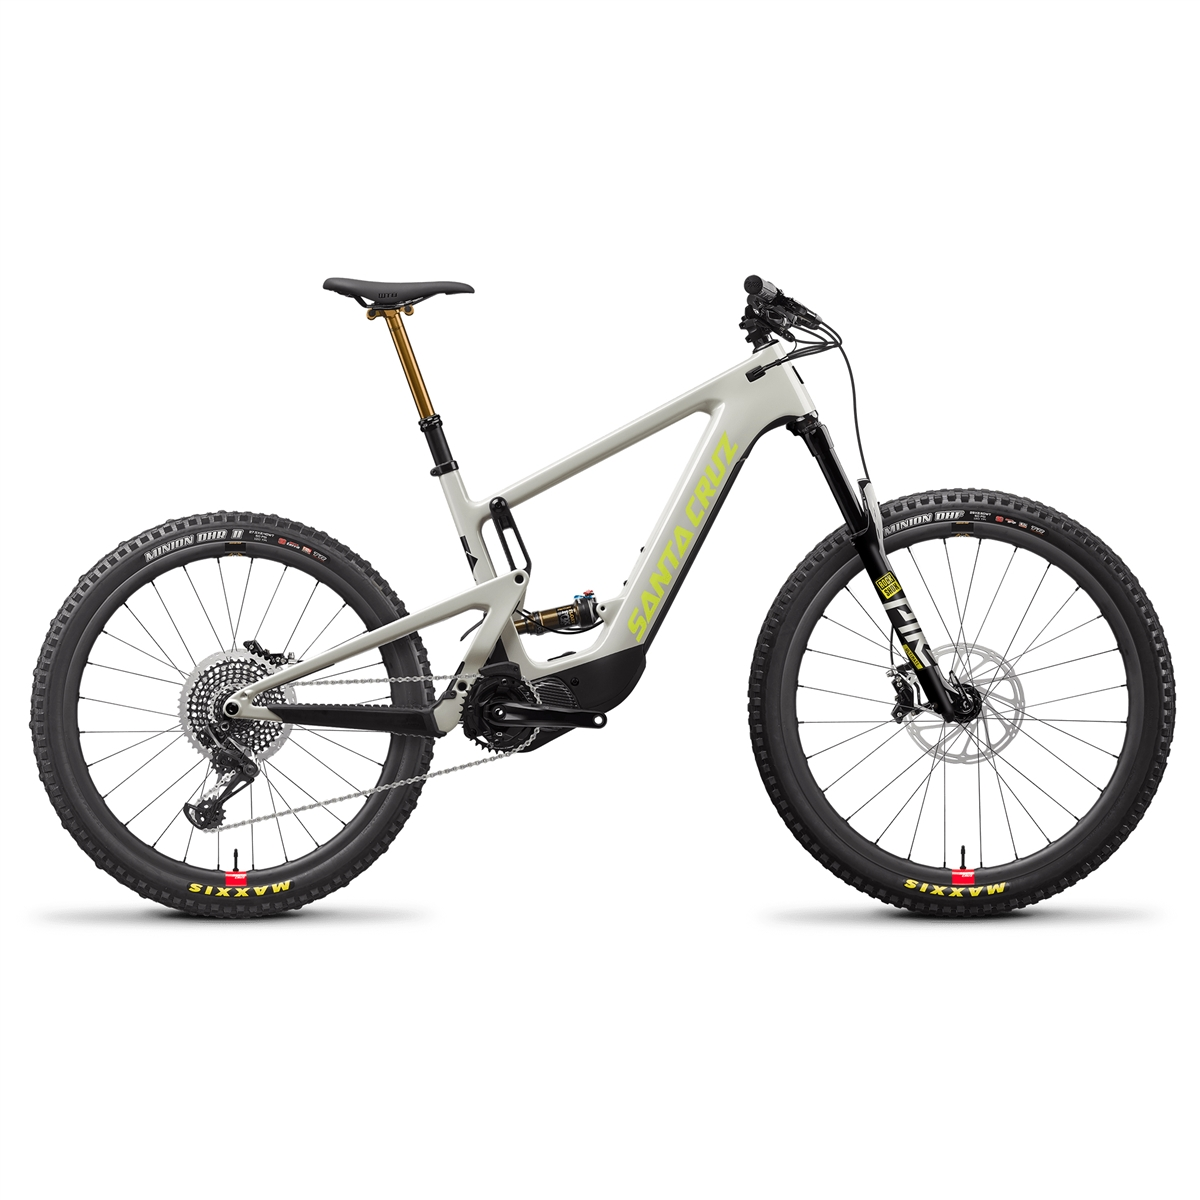 Heckler CC MX LITE X01 RSV 29''/27.5'' 140mm 12s 504Wh Shimano EP8 2021 Grey Size M